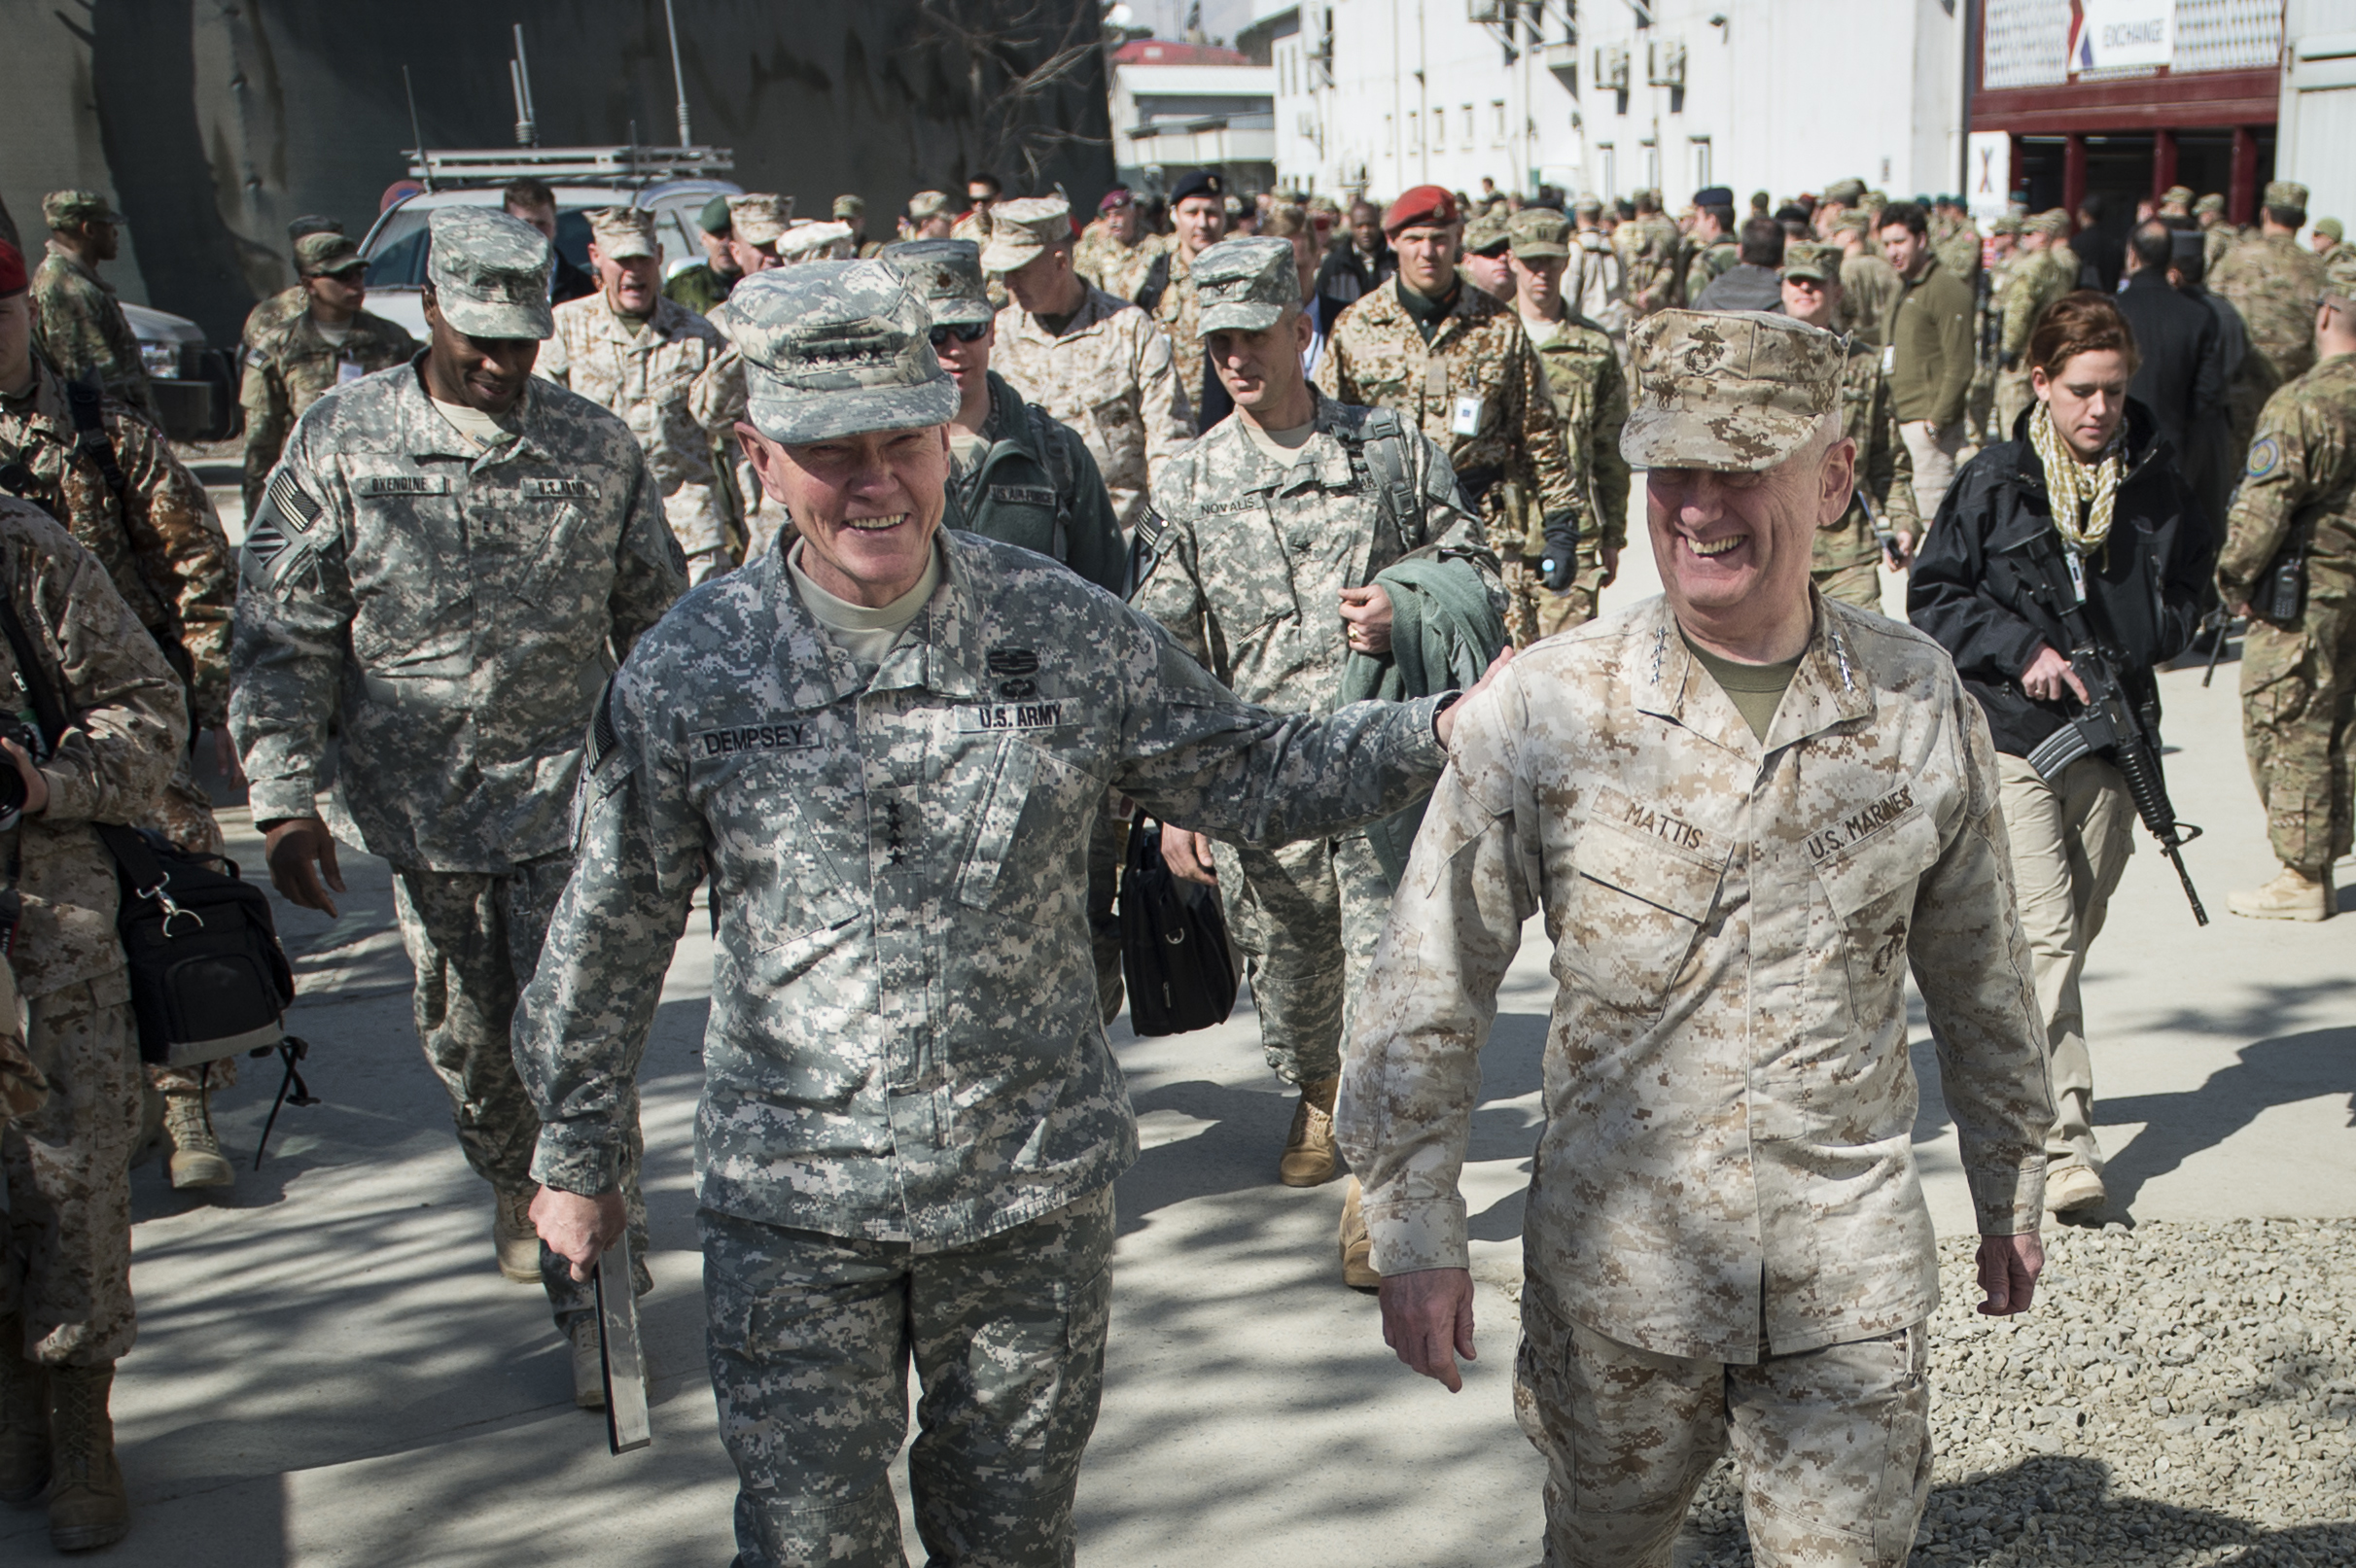 File Chairman Of The Joint Chiefs Of Staff Gen Martin E